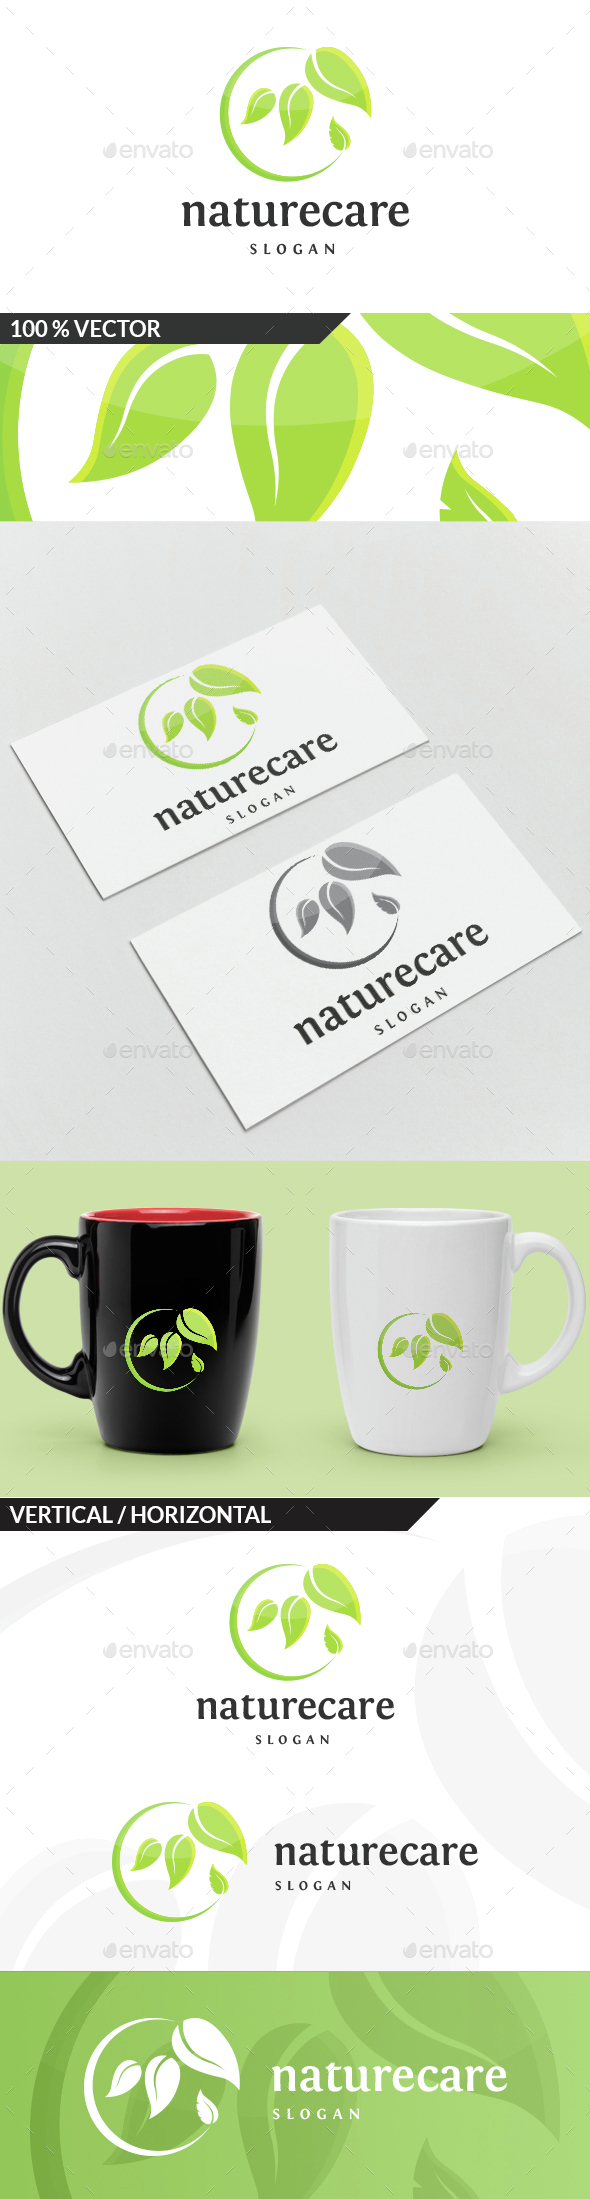 Nature Care Logo - Nature Logo Templates